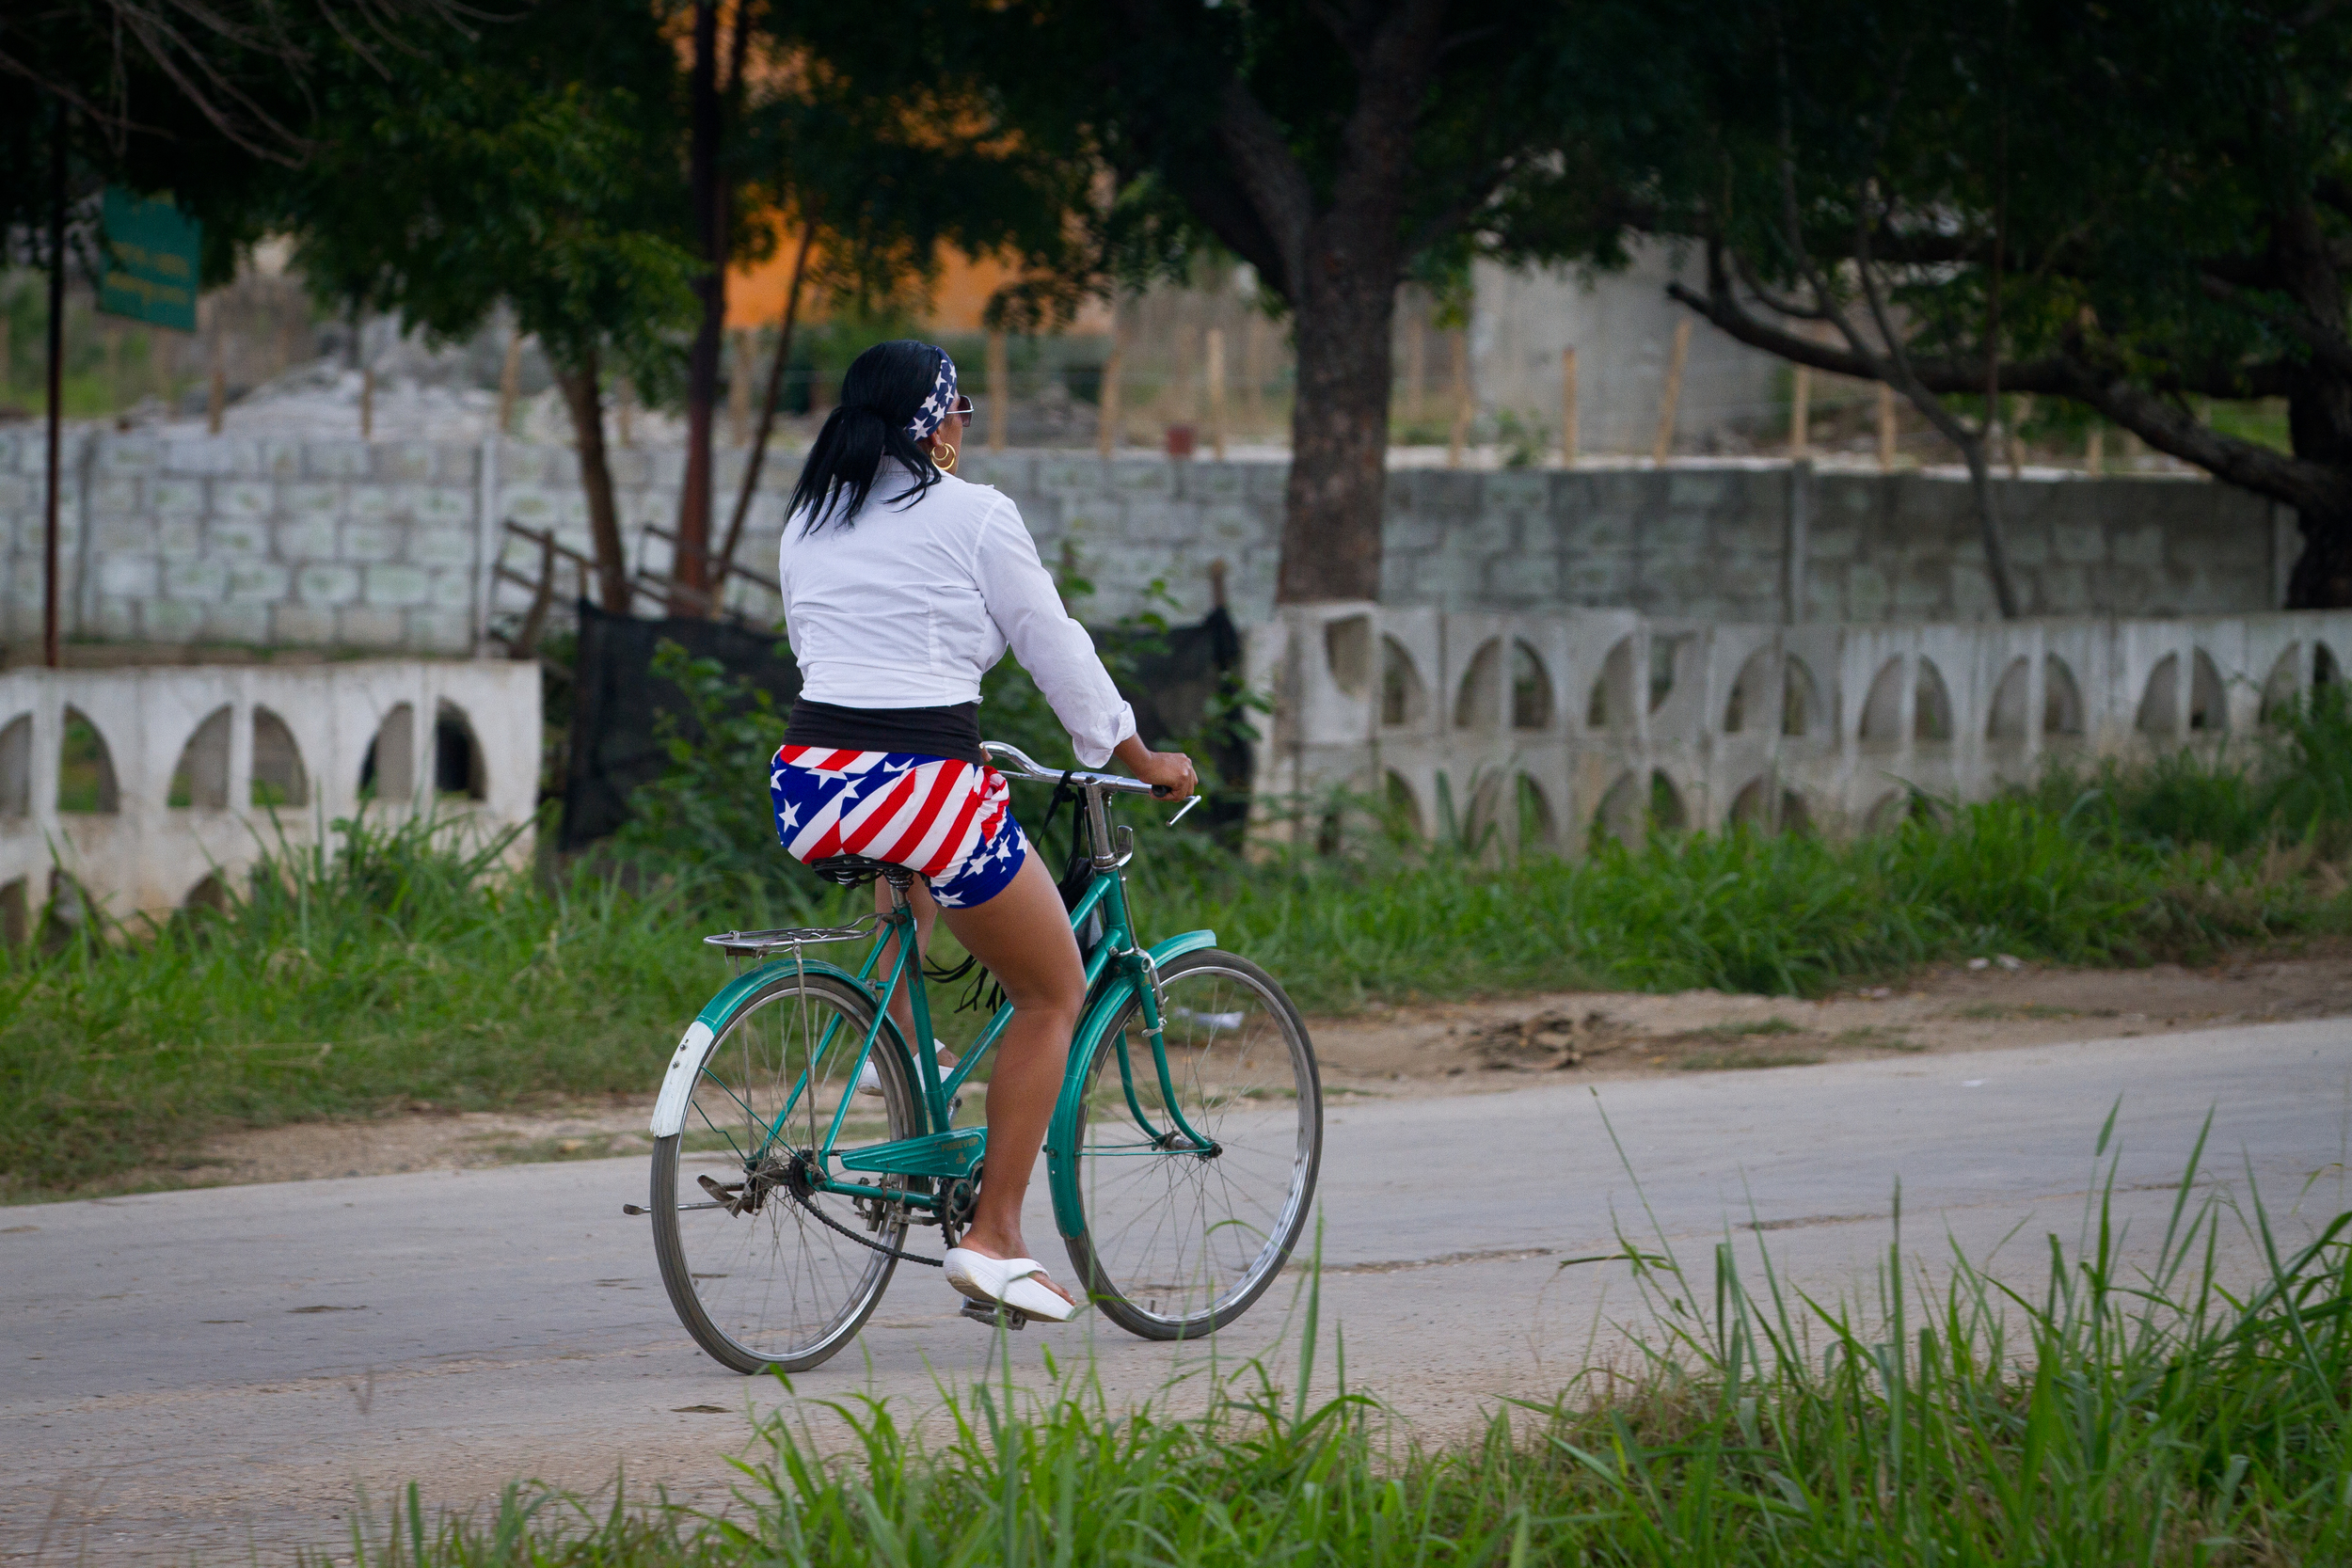 A young girl shows her enthusiasm for relations with the US, Ciego de Avilla, Cuba